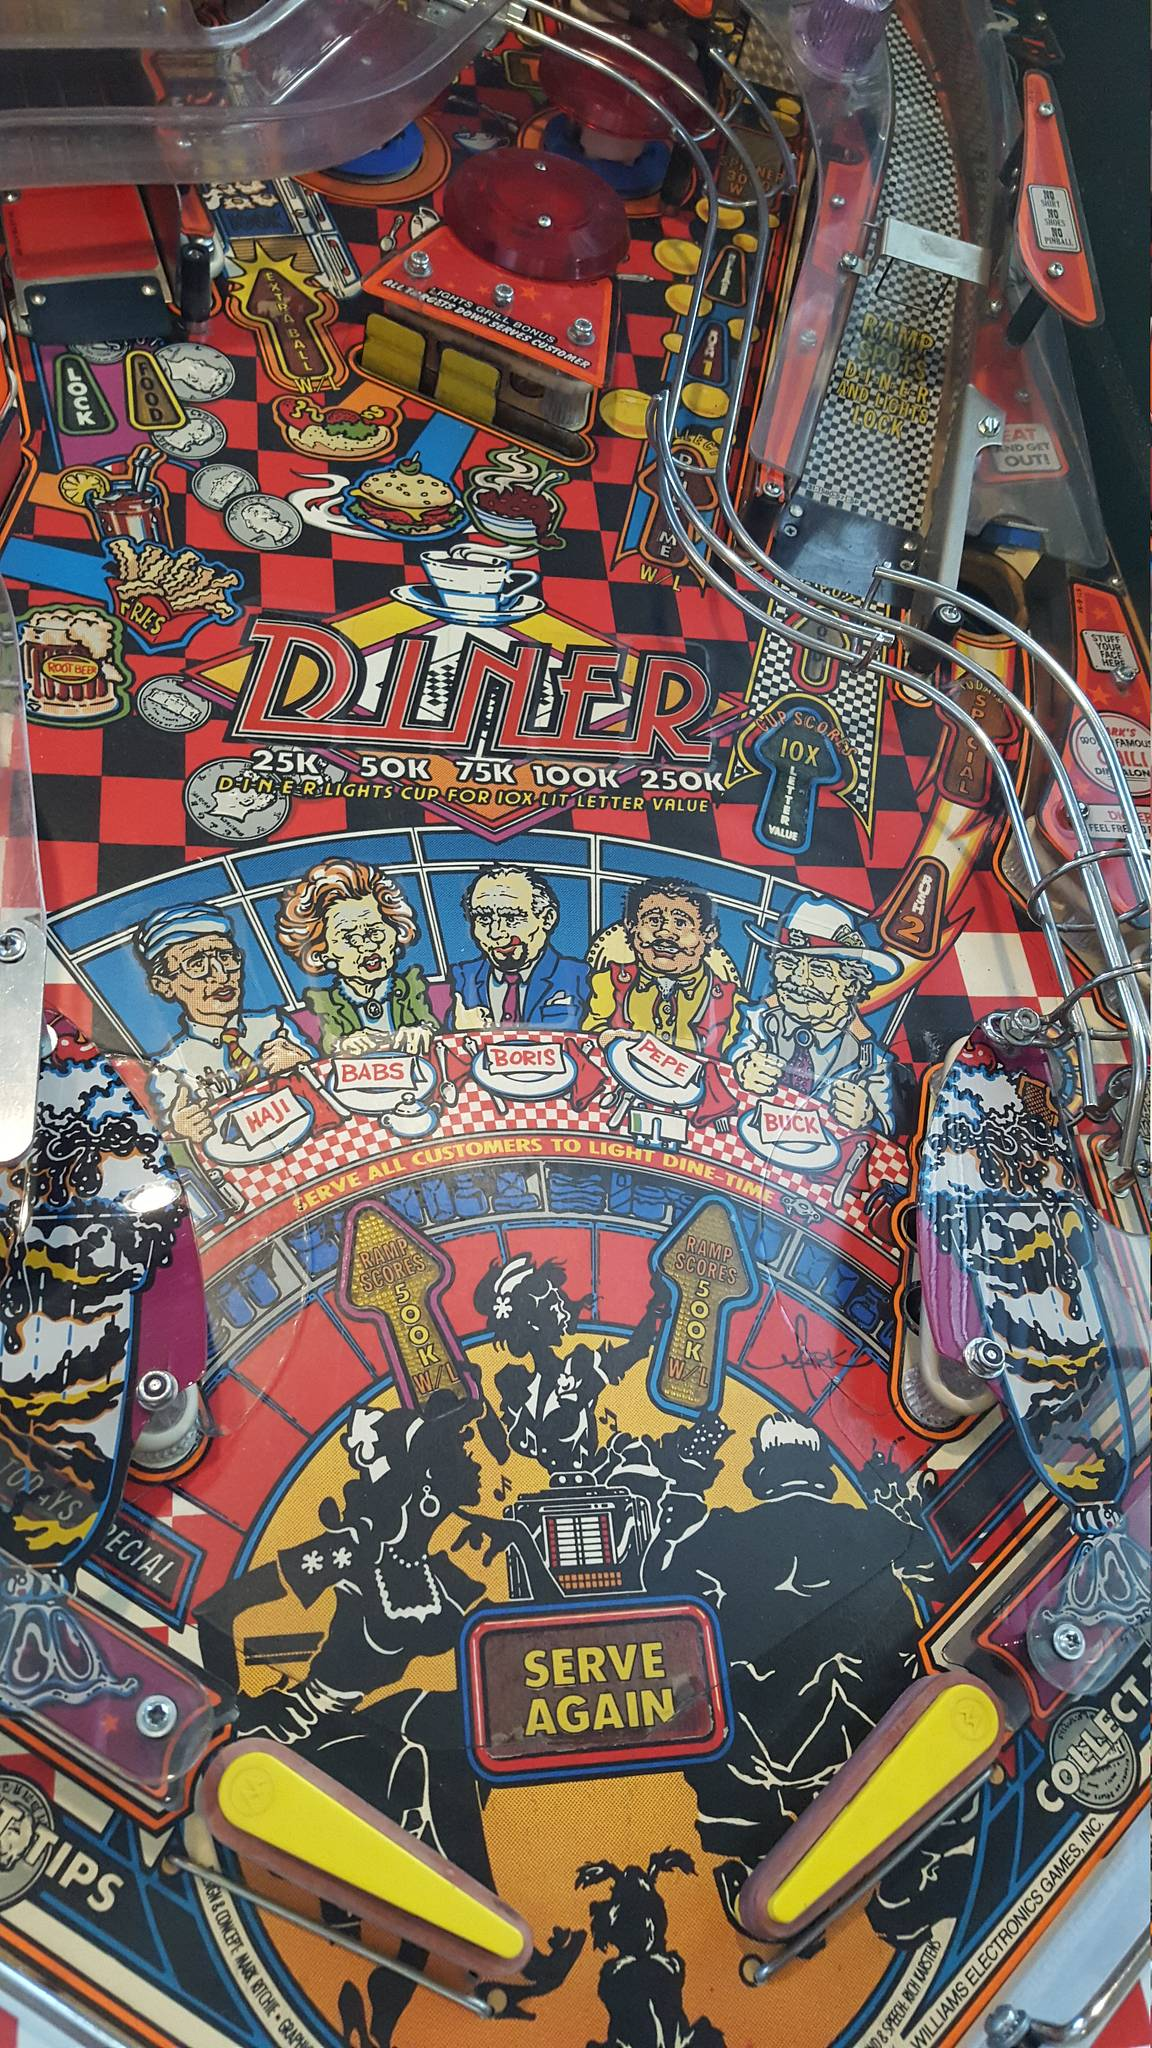 For sale Williams Diner Pinball Machine